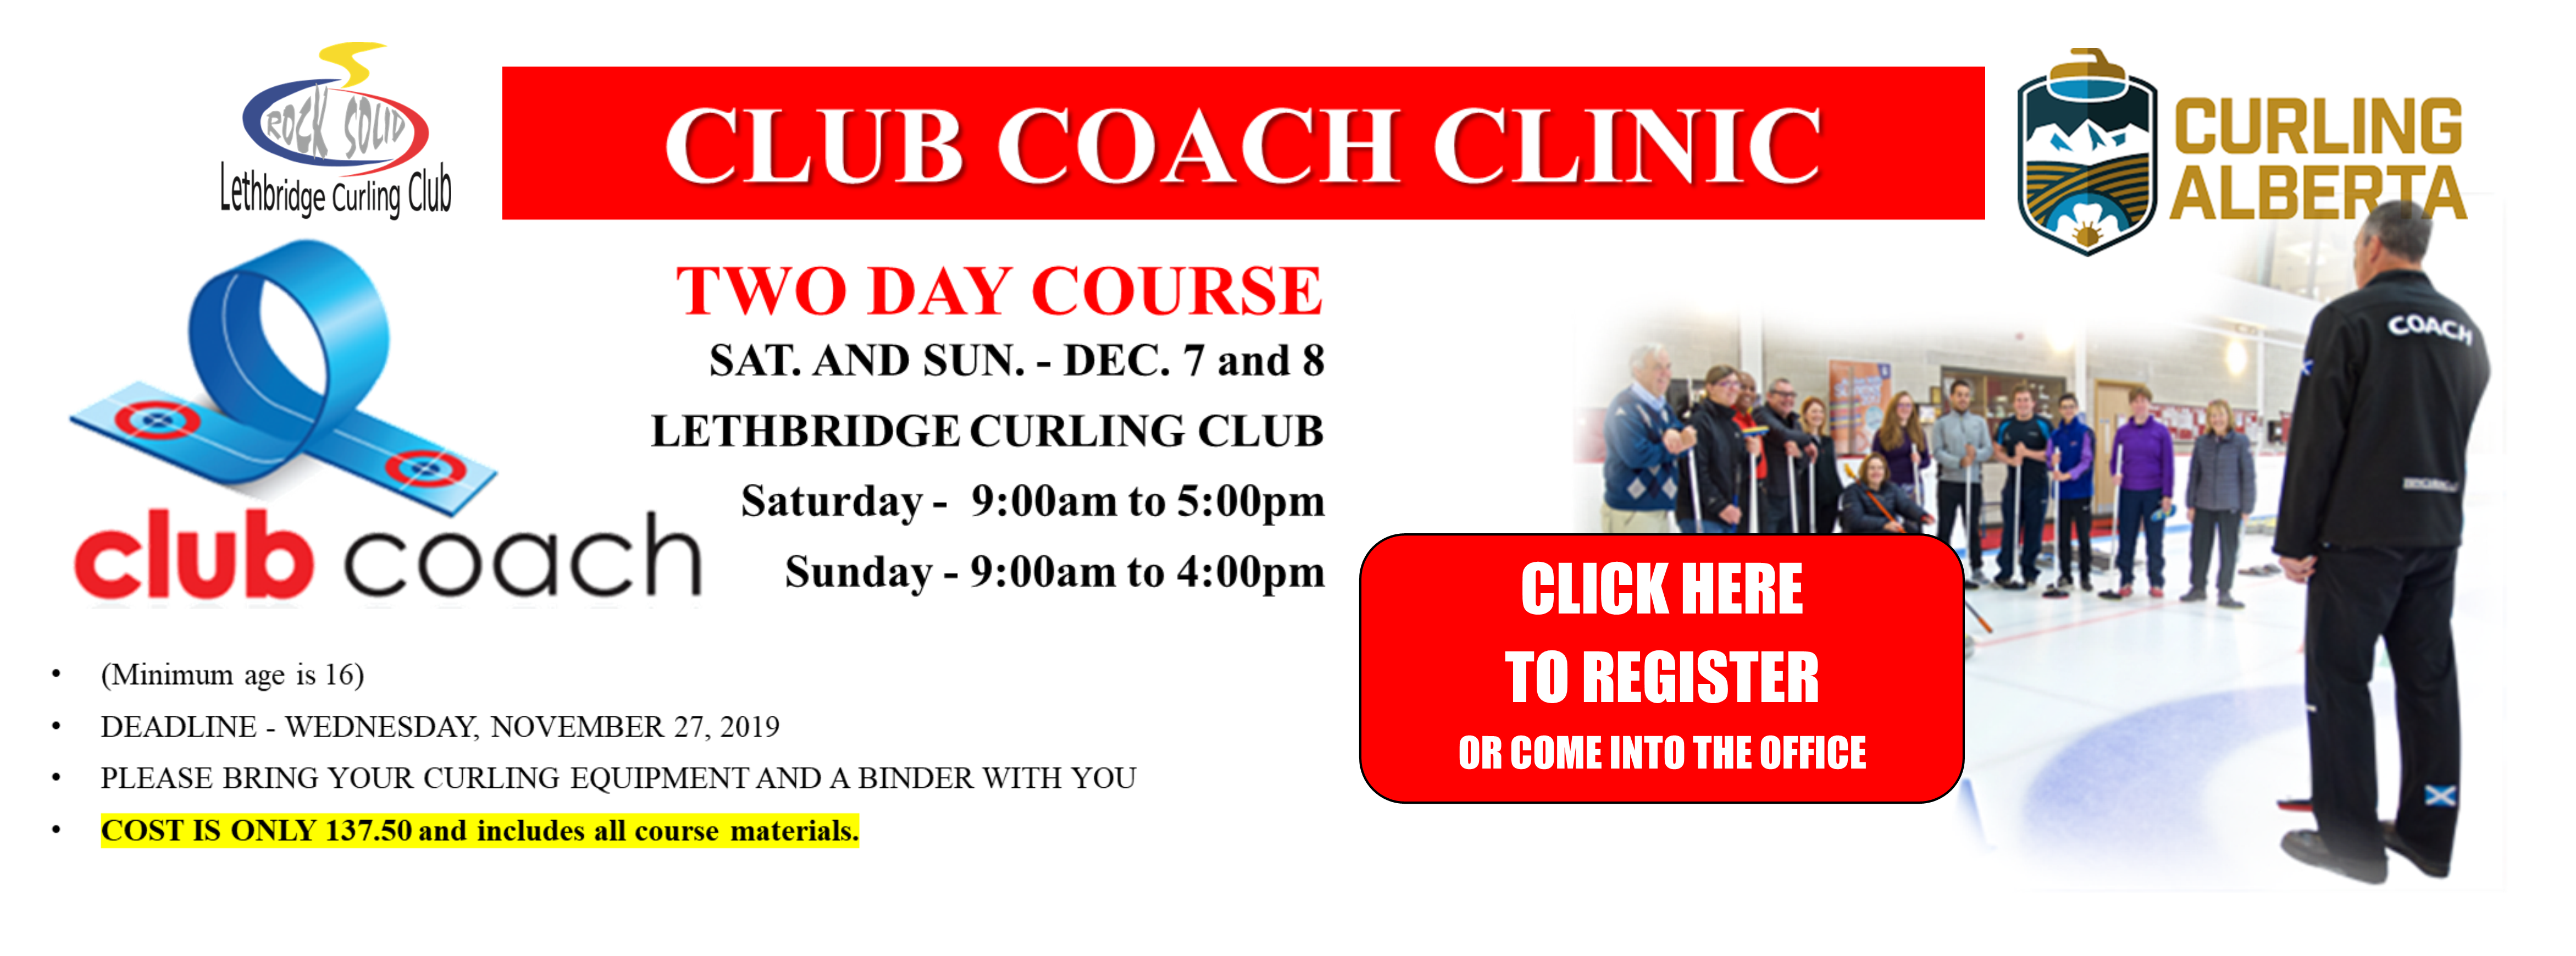 <div id=slideshow_title>Sign up today! - Club Coach Clinic</div> <br><div style='text-align: left; font-size: 18px;'>Click Anywhere to Register!</div>